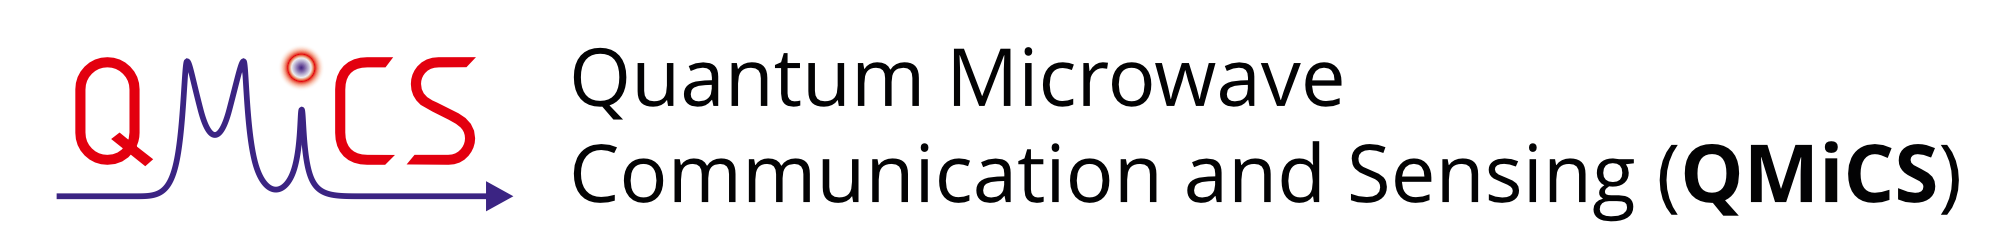 QMiCS –Quantum Microwaves for Communication and Sensing